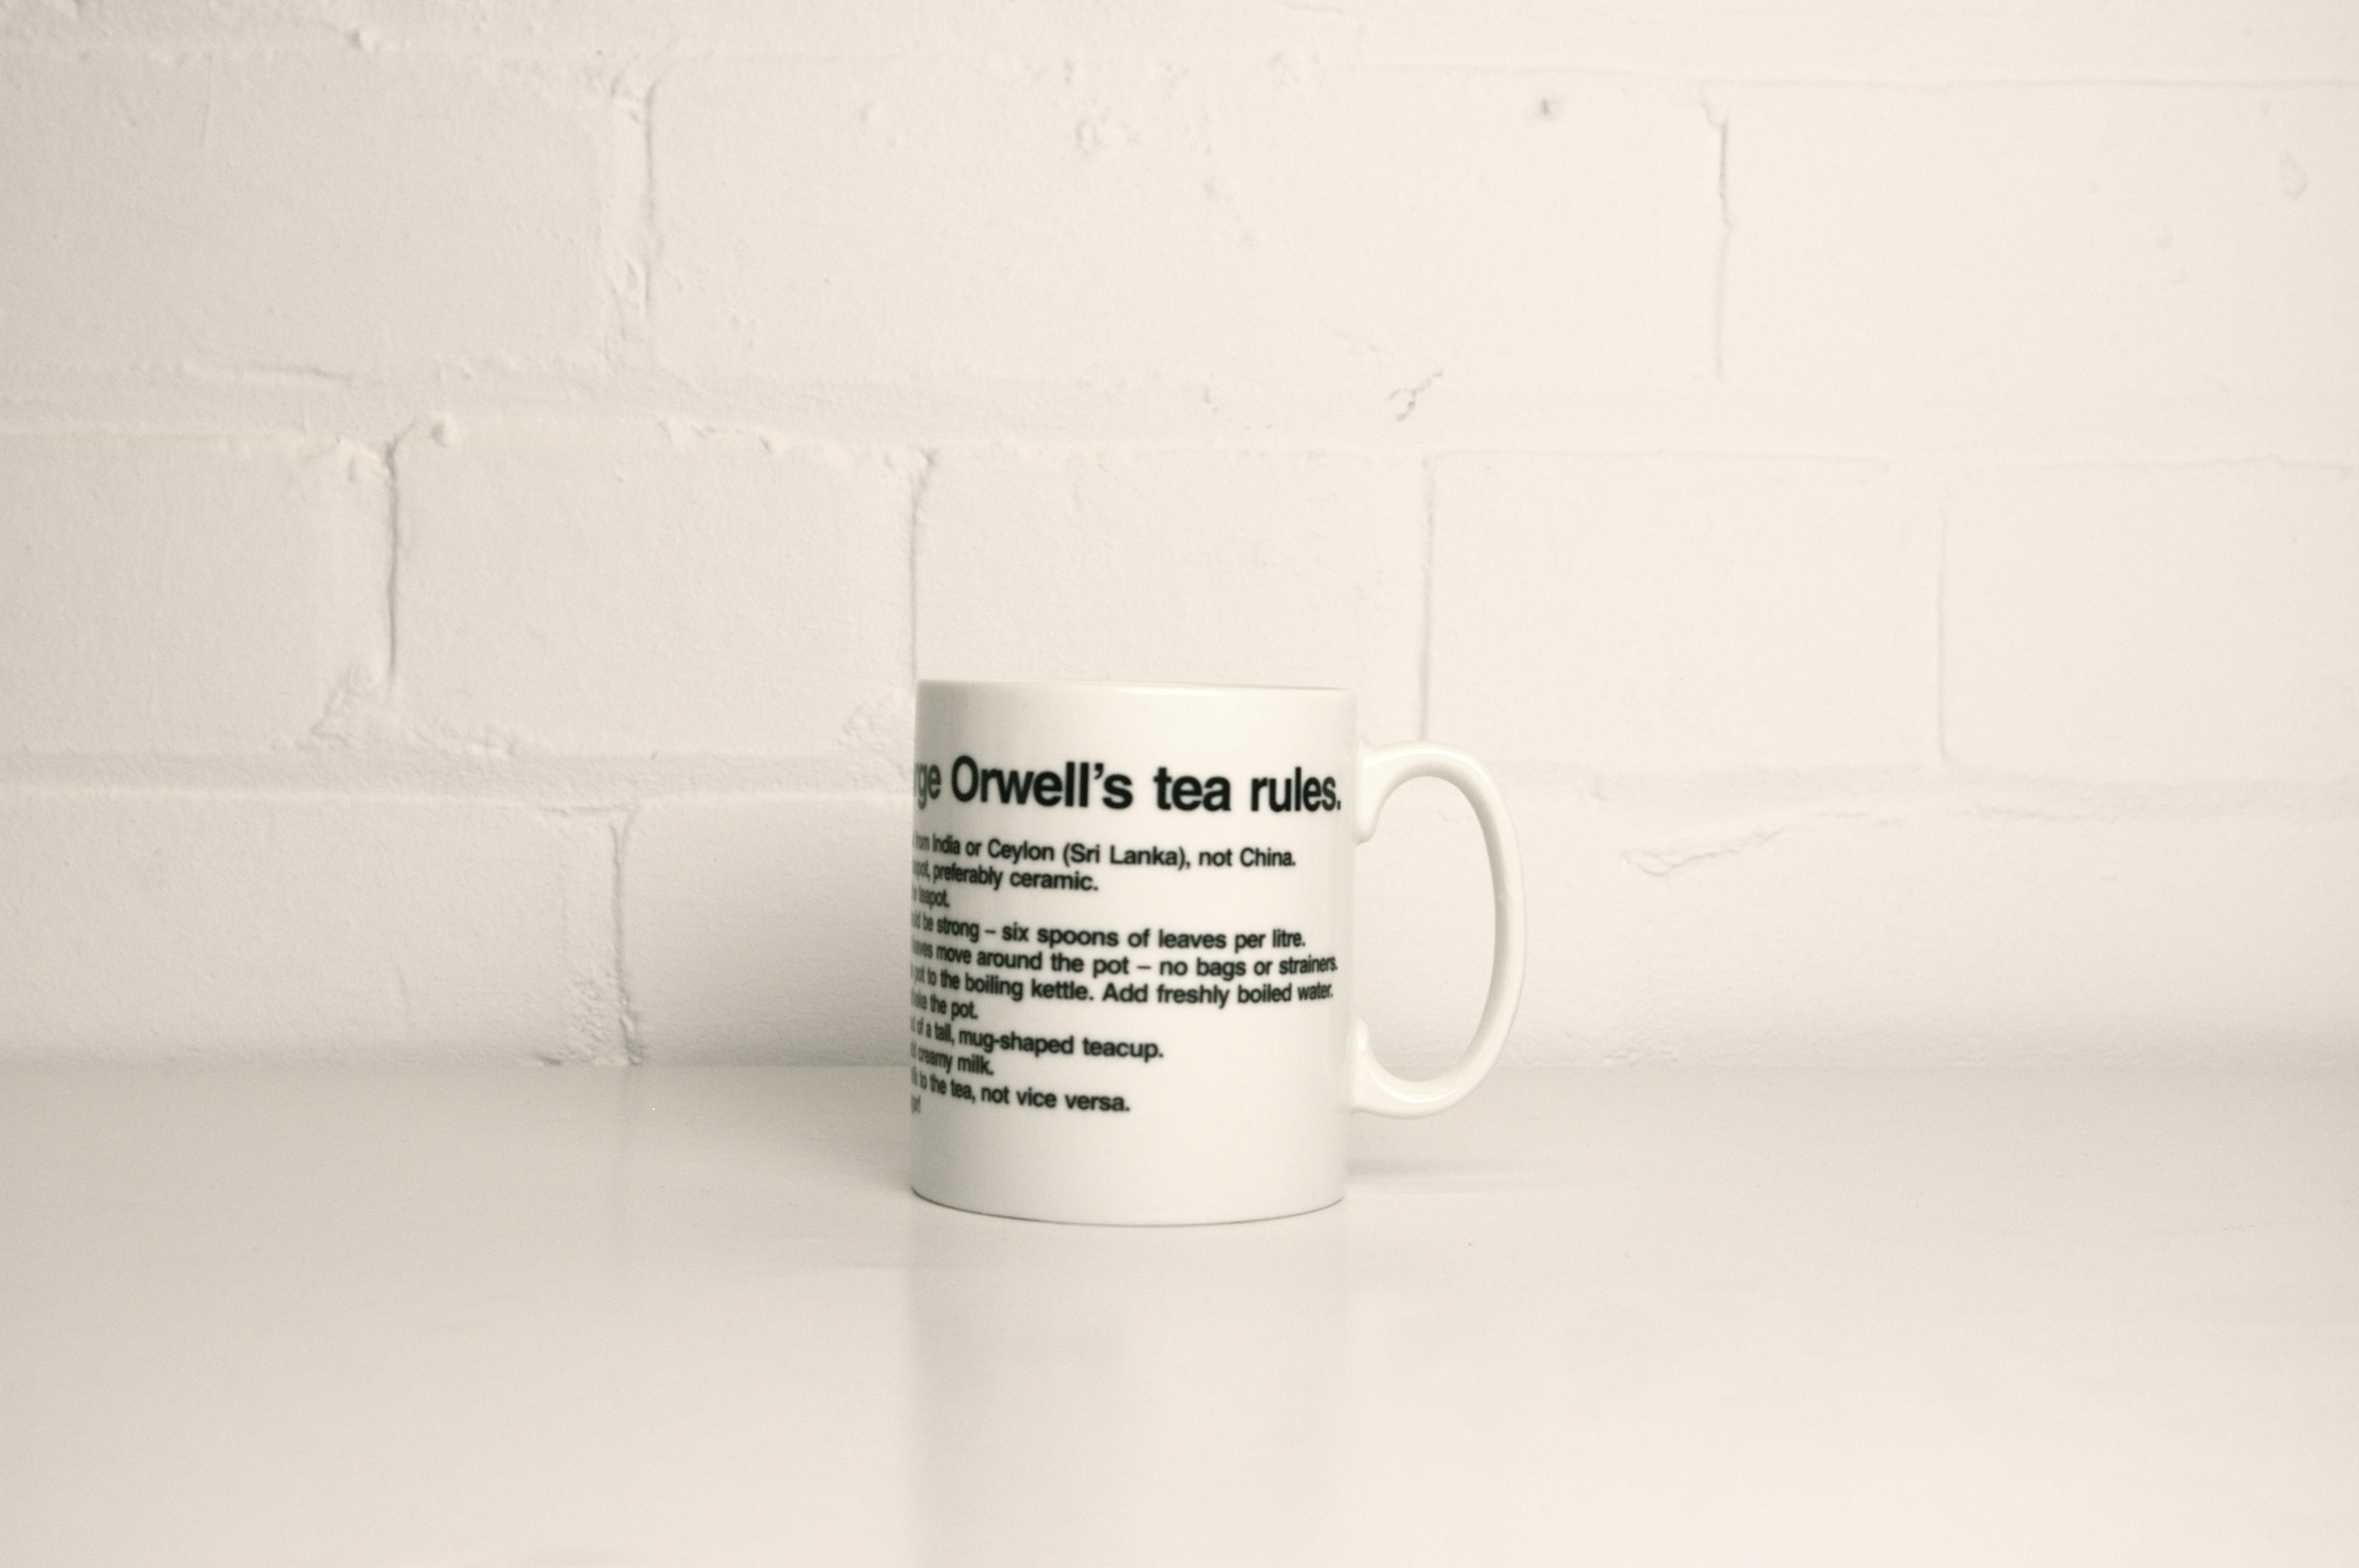 """orwell essay on making tea In the essay, orwell notes, """"the best manner of making it is the subject of violent disputes"""" but nonetheless is brave enough to offer """"my own eleven rules,  and while he's okay with adulterating tea with milk, orwell minces no words when it comes to the question of sugar in tea, """"how can you call yourself a true tealover if you destroy the flavour of your tea by putting sugar in it."""